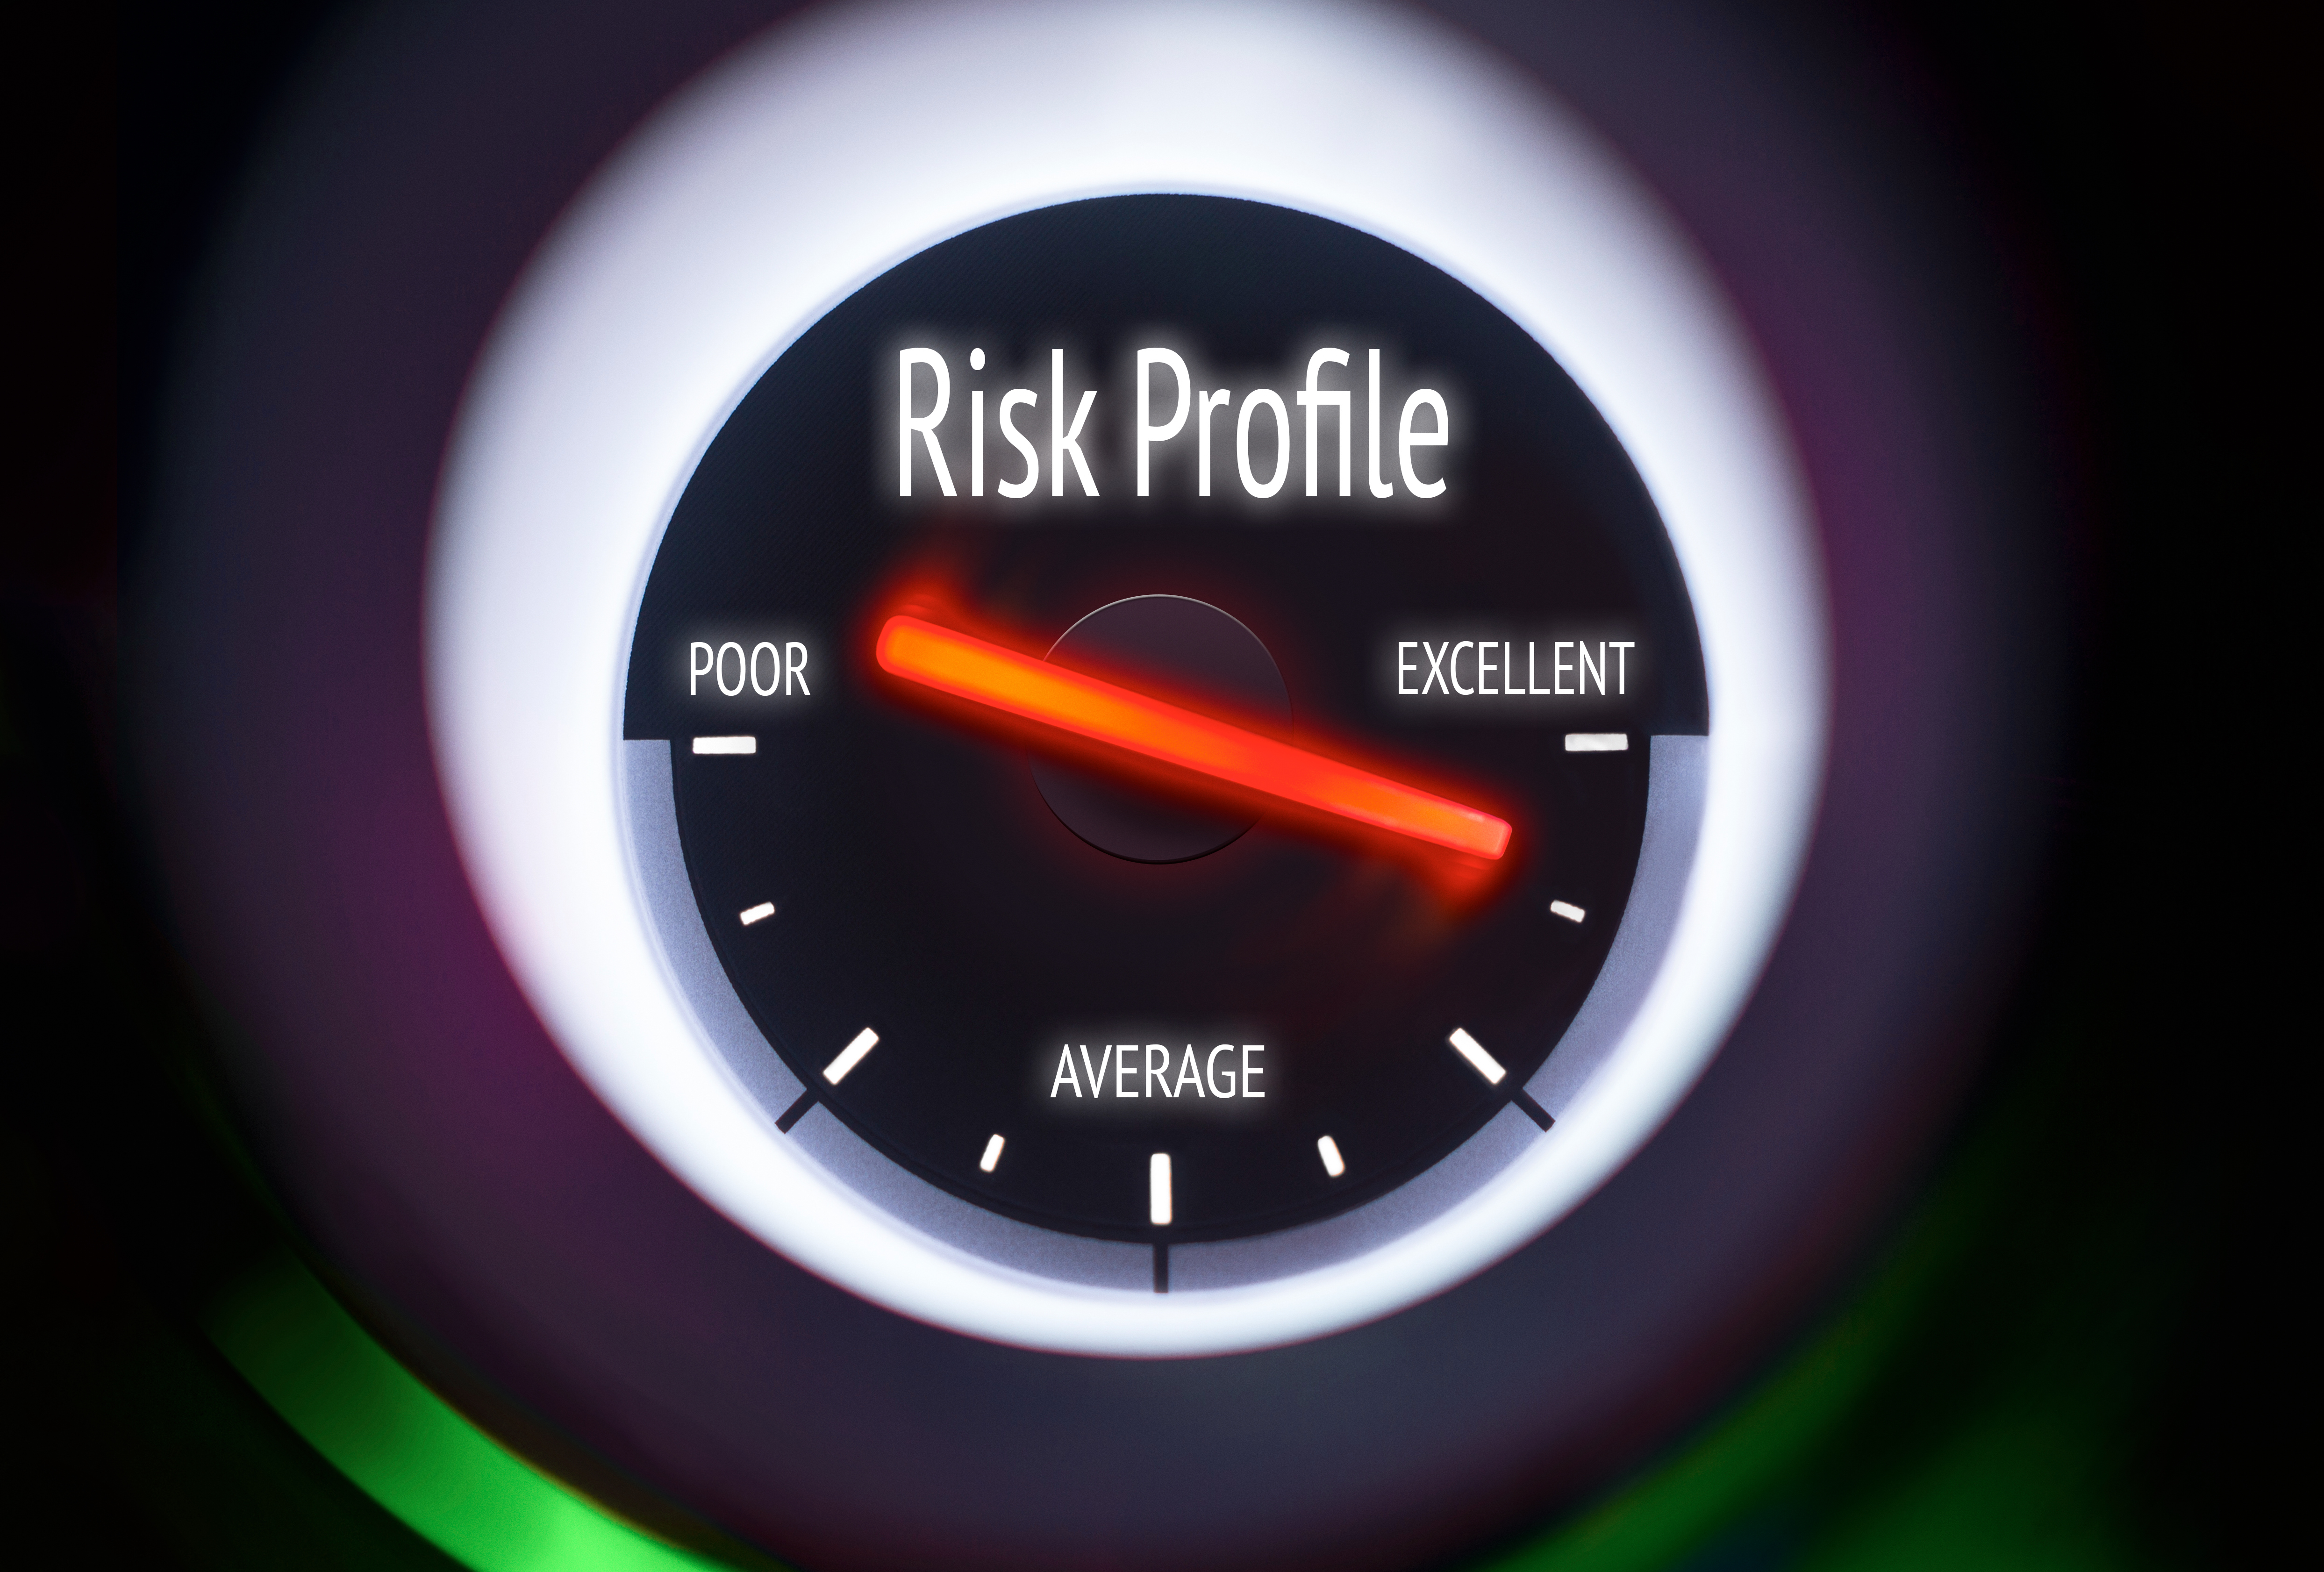 Risk profile dial from poor to excellent